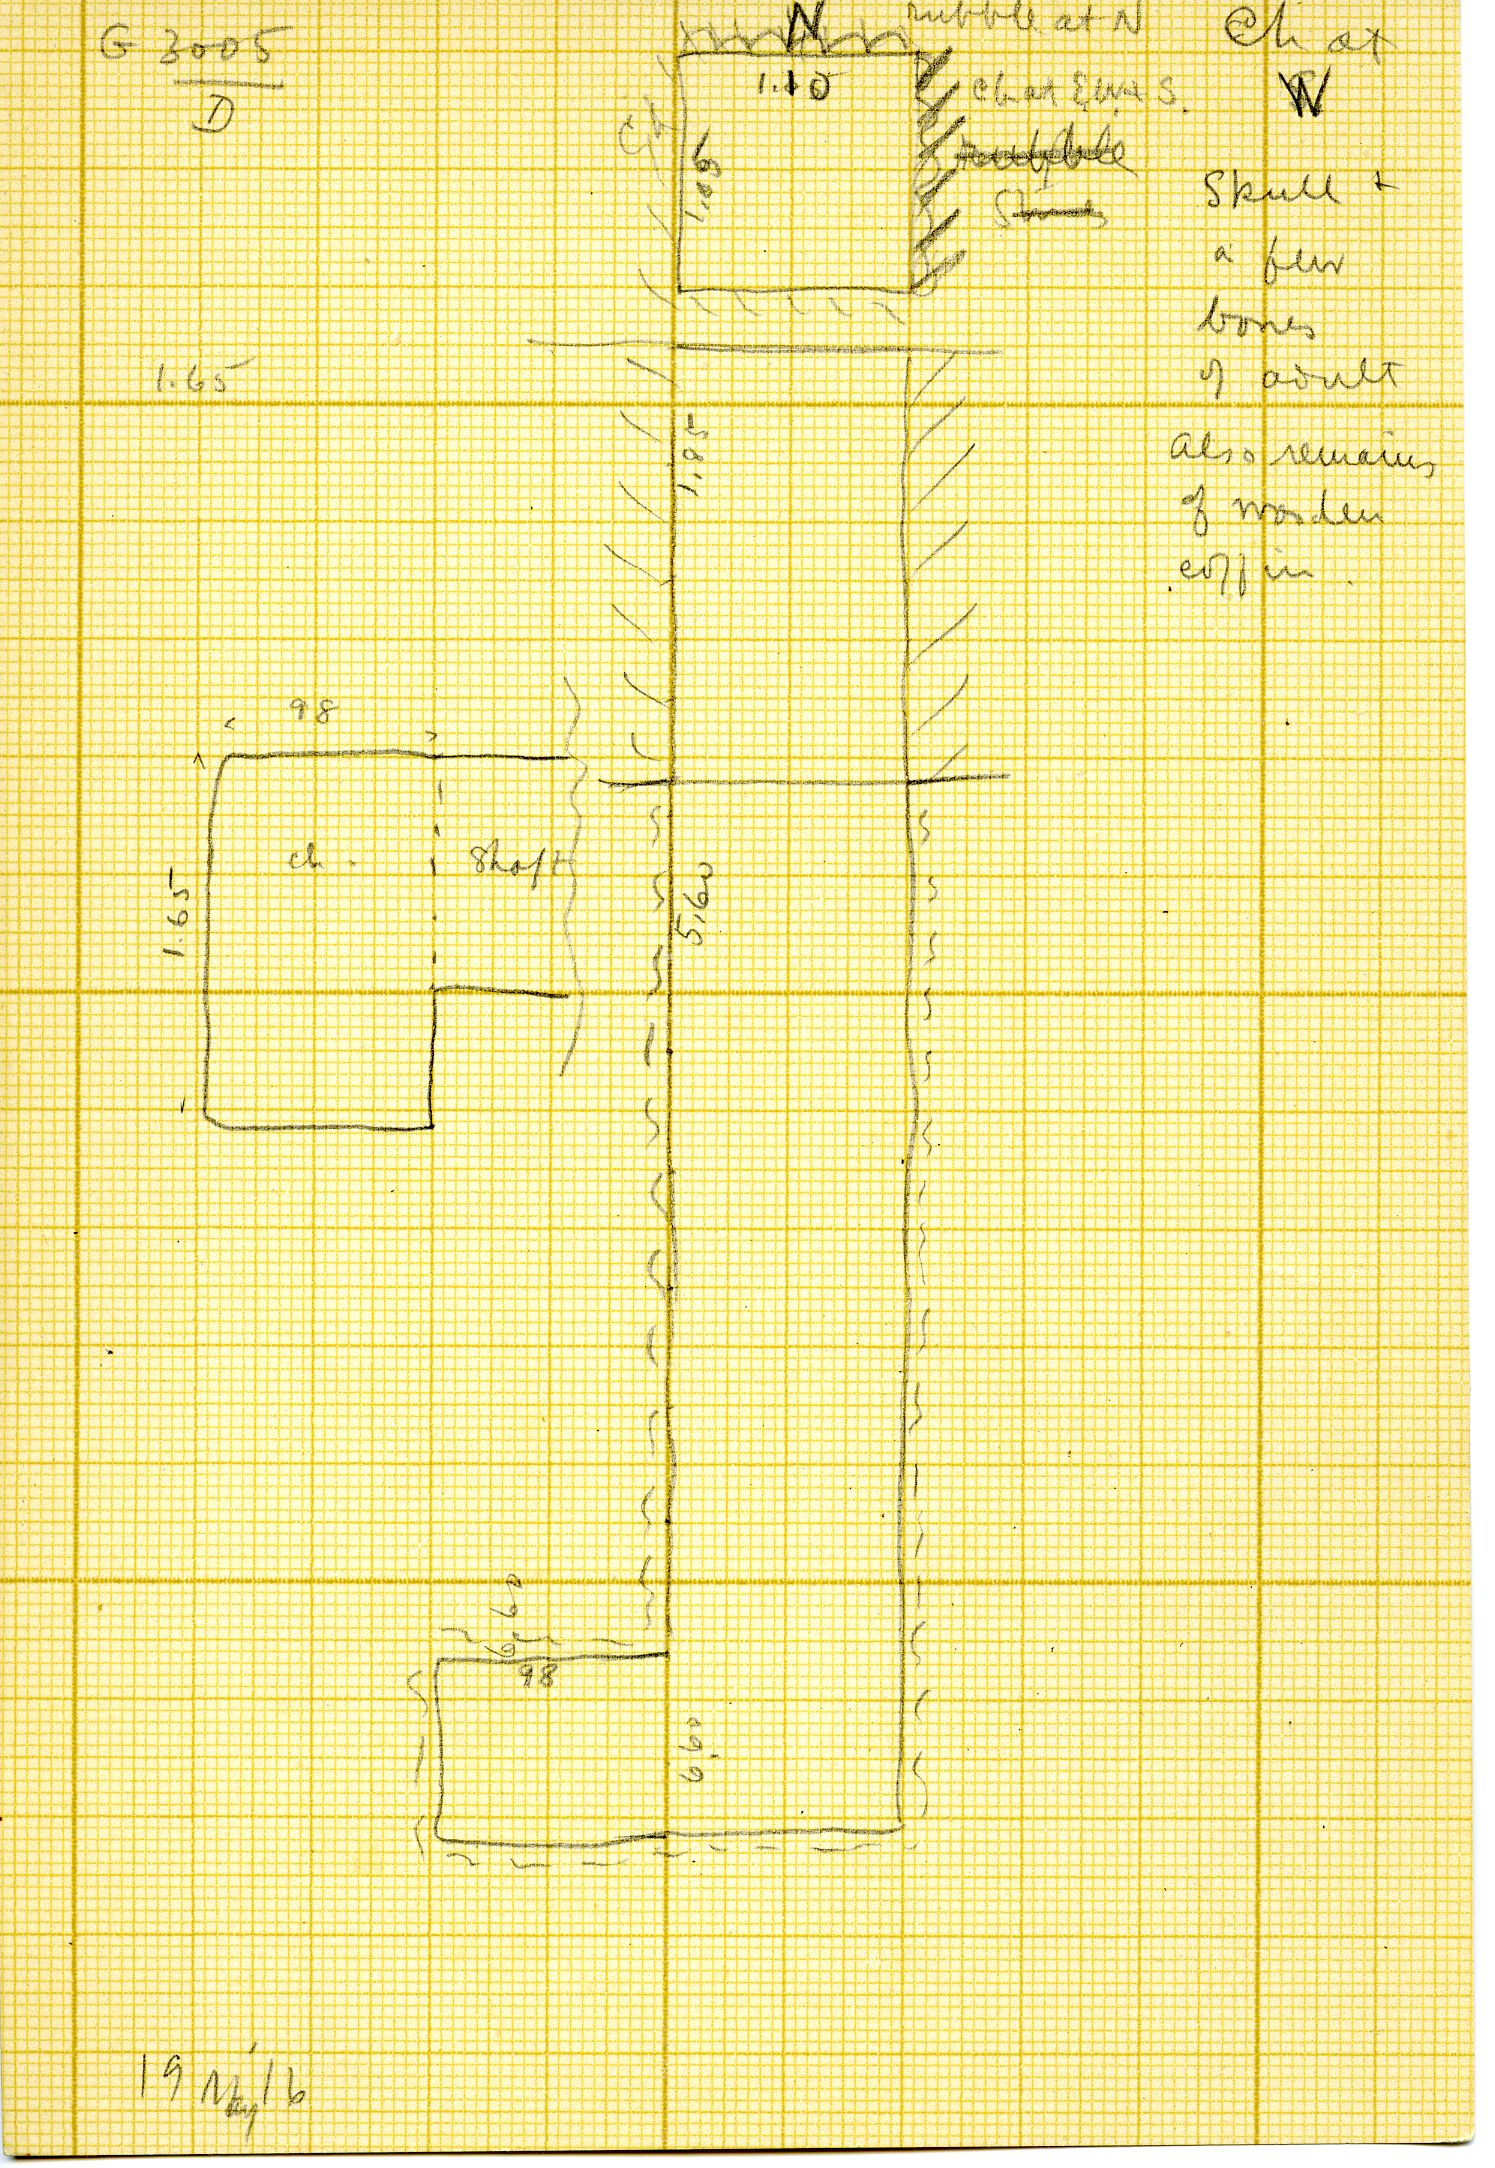 Maps and plans: G 3005, Shaft D